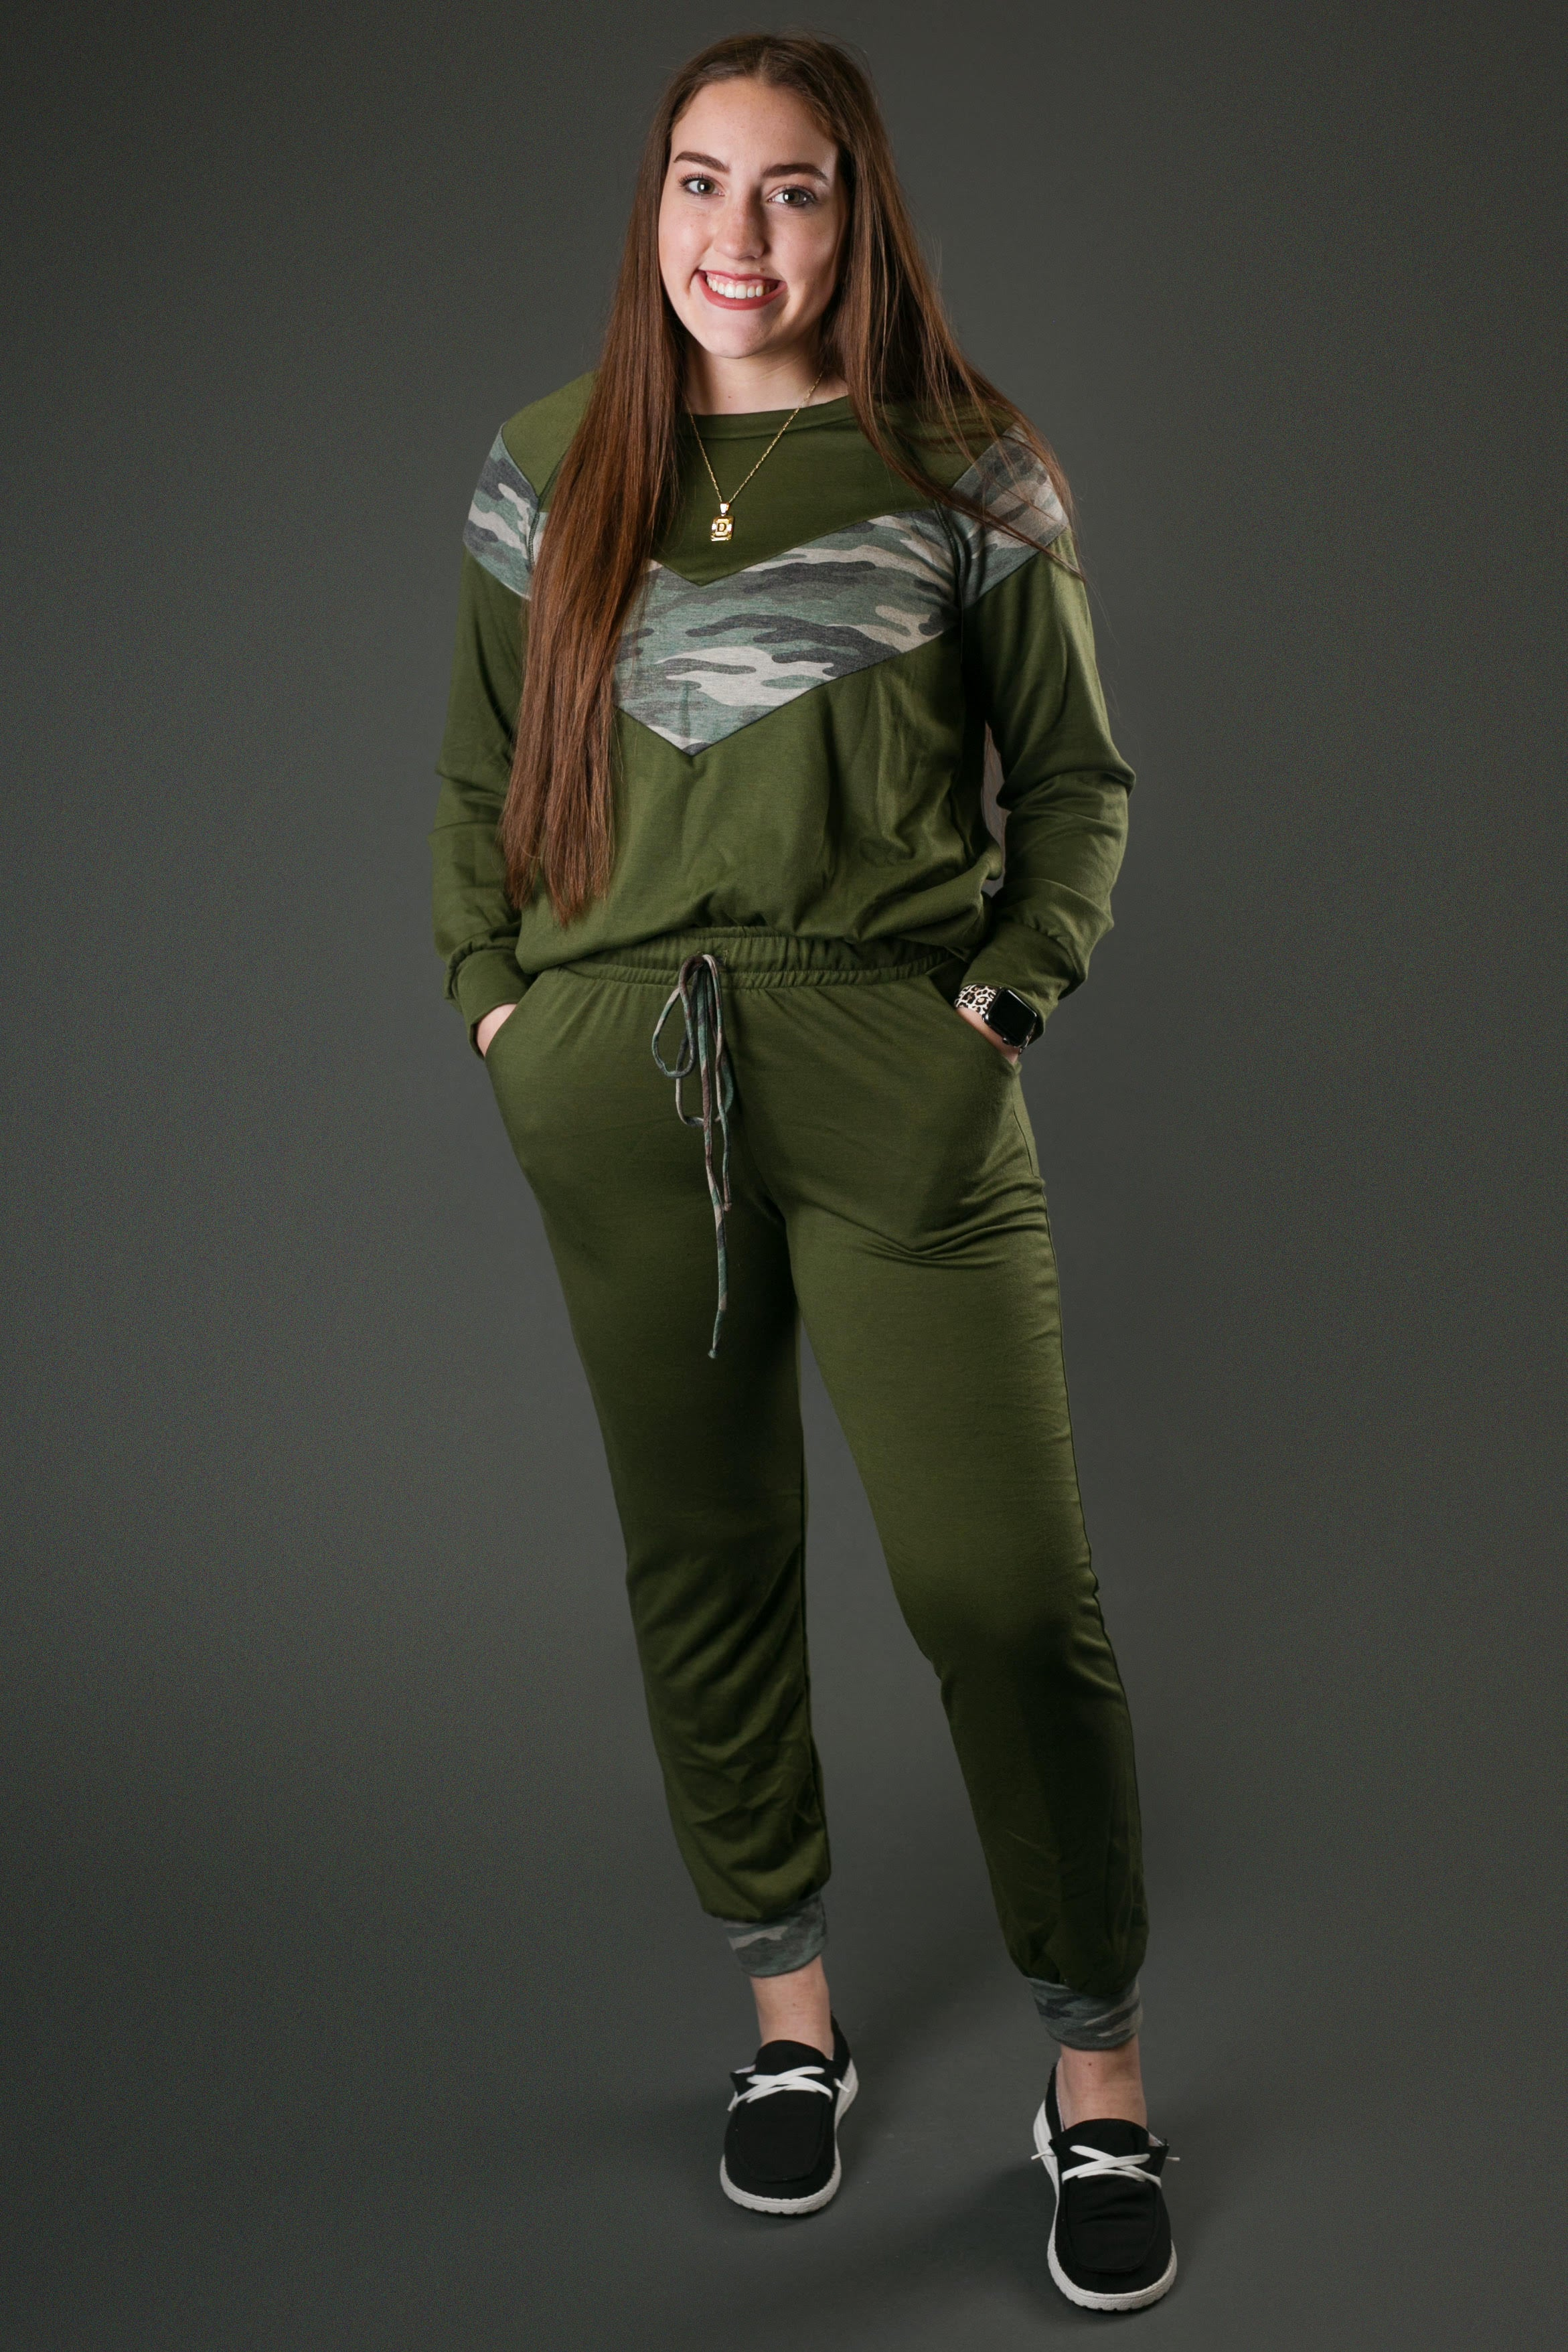 image of a sweatsuit set from Gia Rose